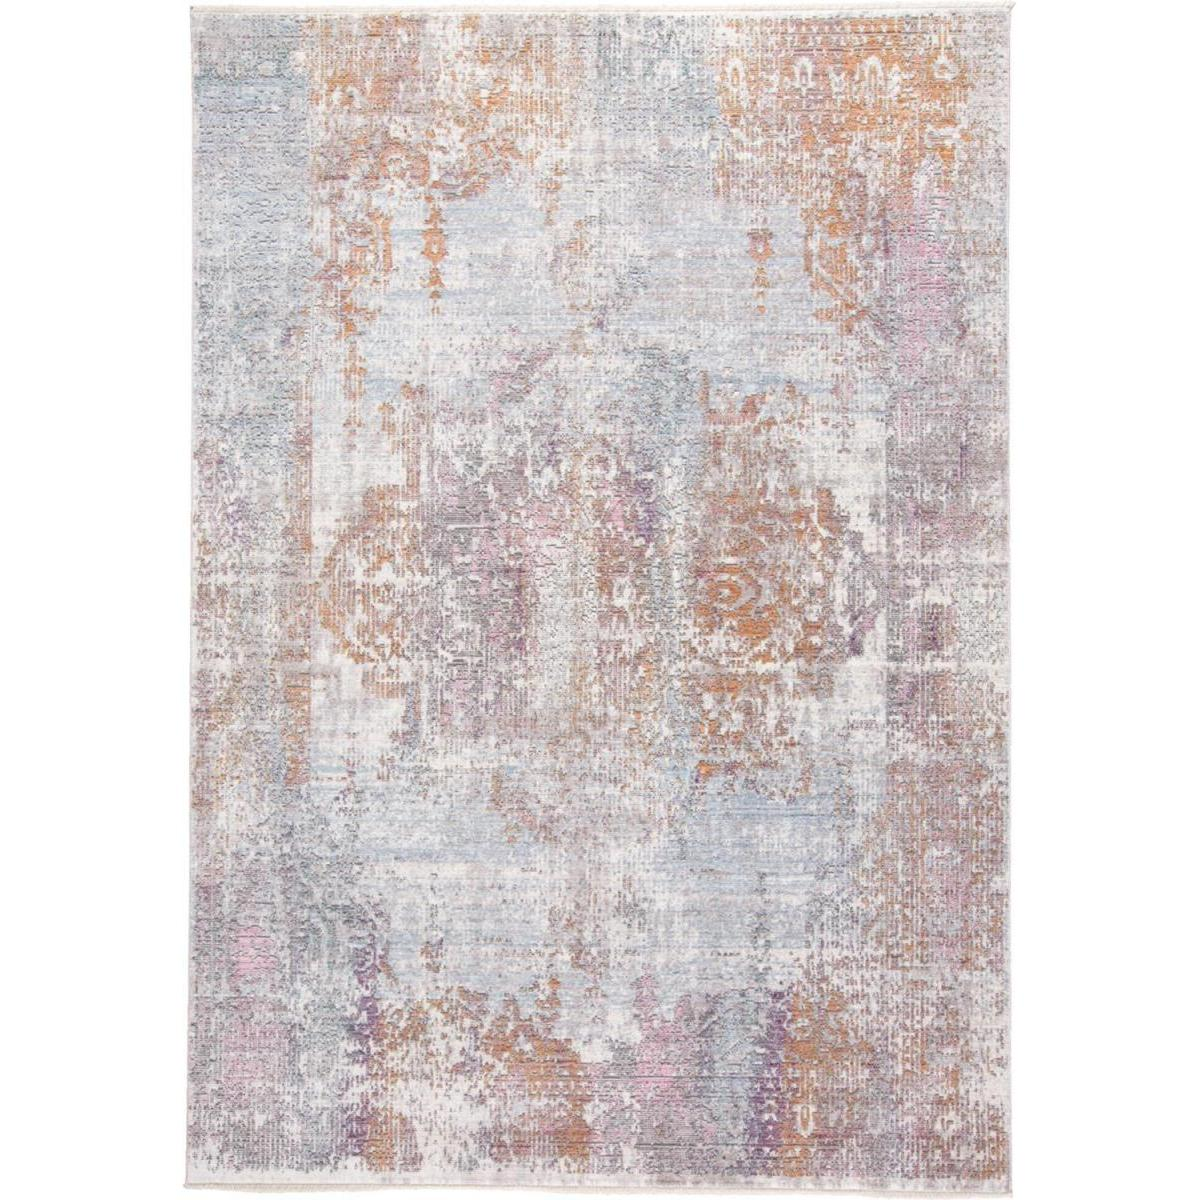 Feizy Home Cecily Rug - Red - 120